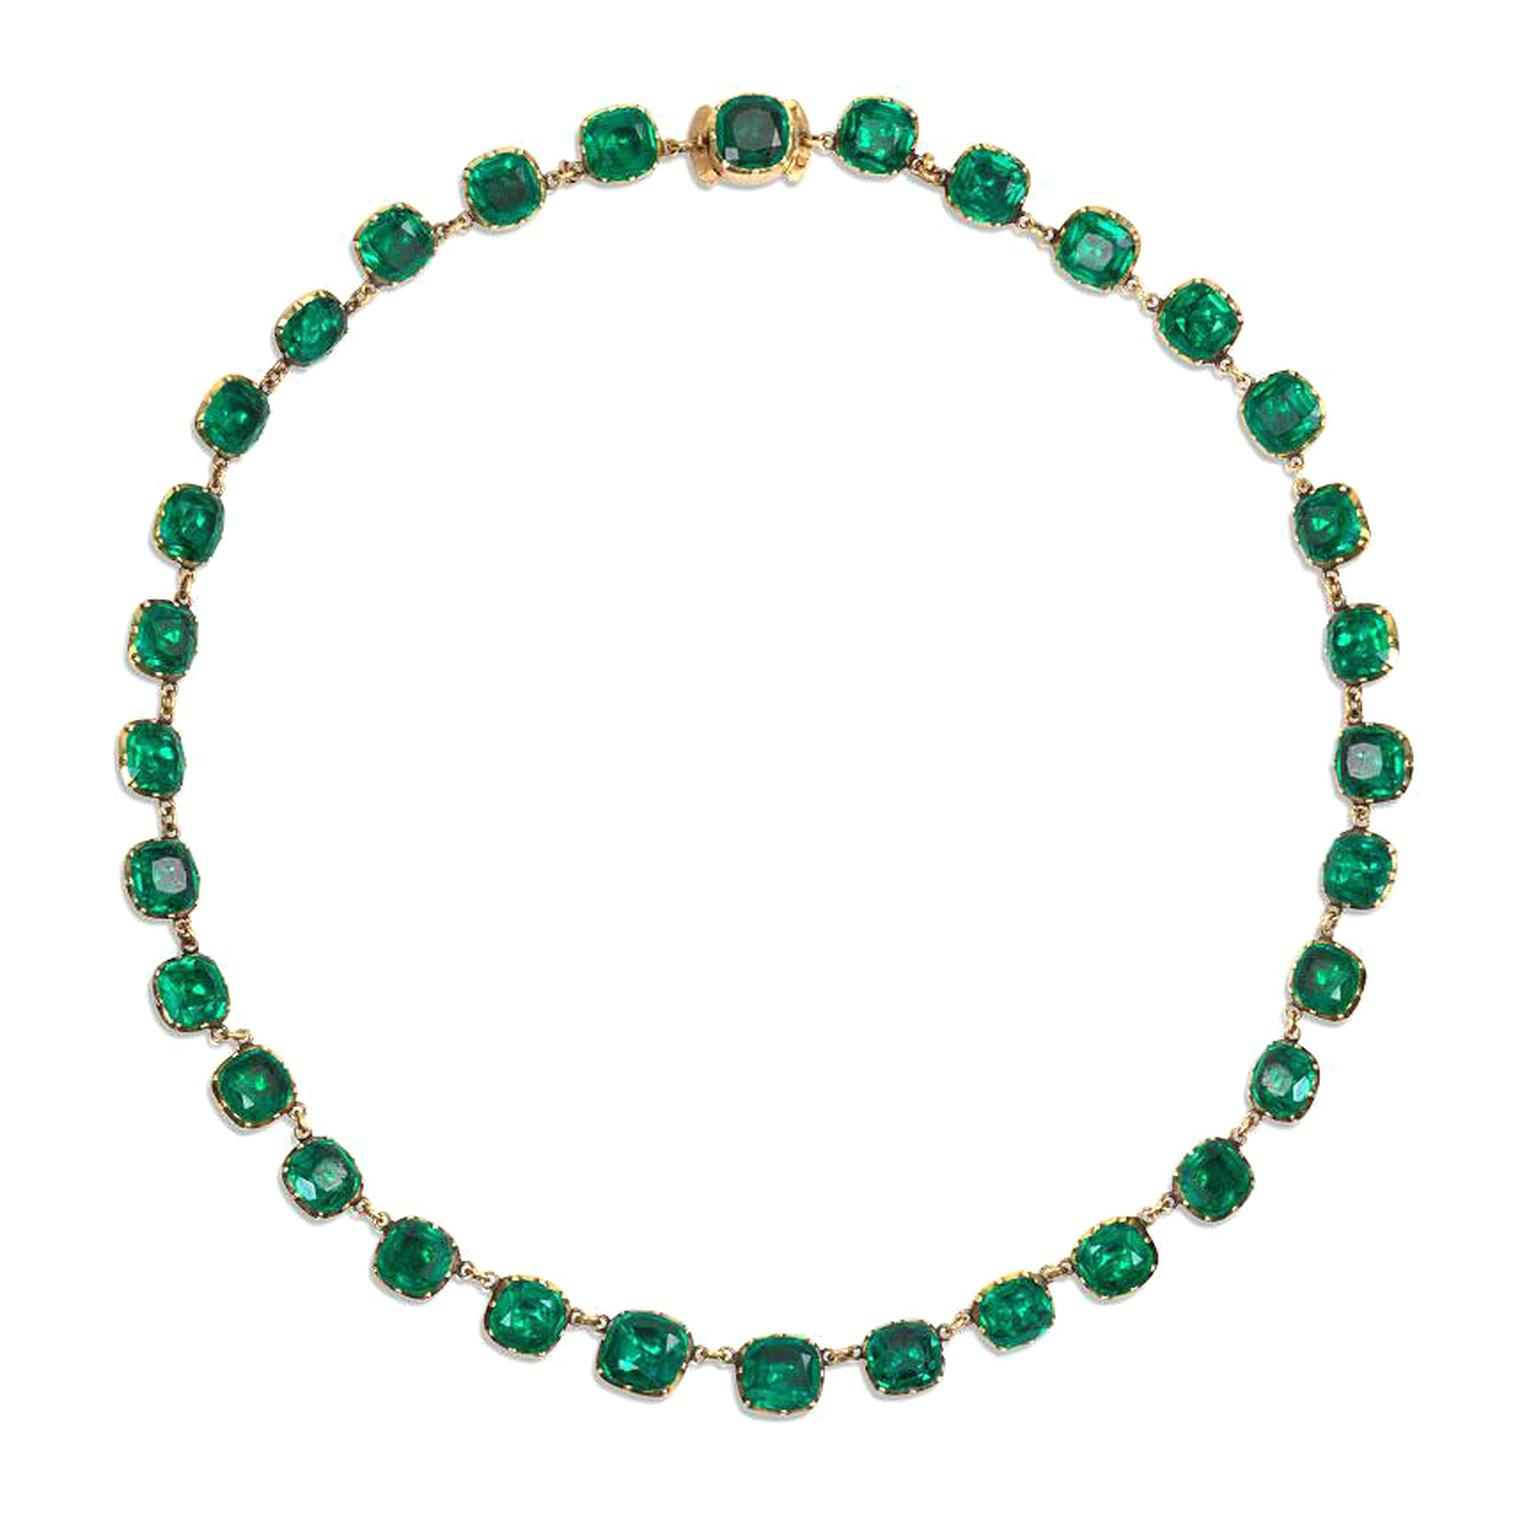 Kentshire emerald paste necklace